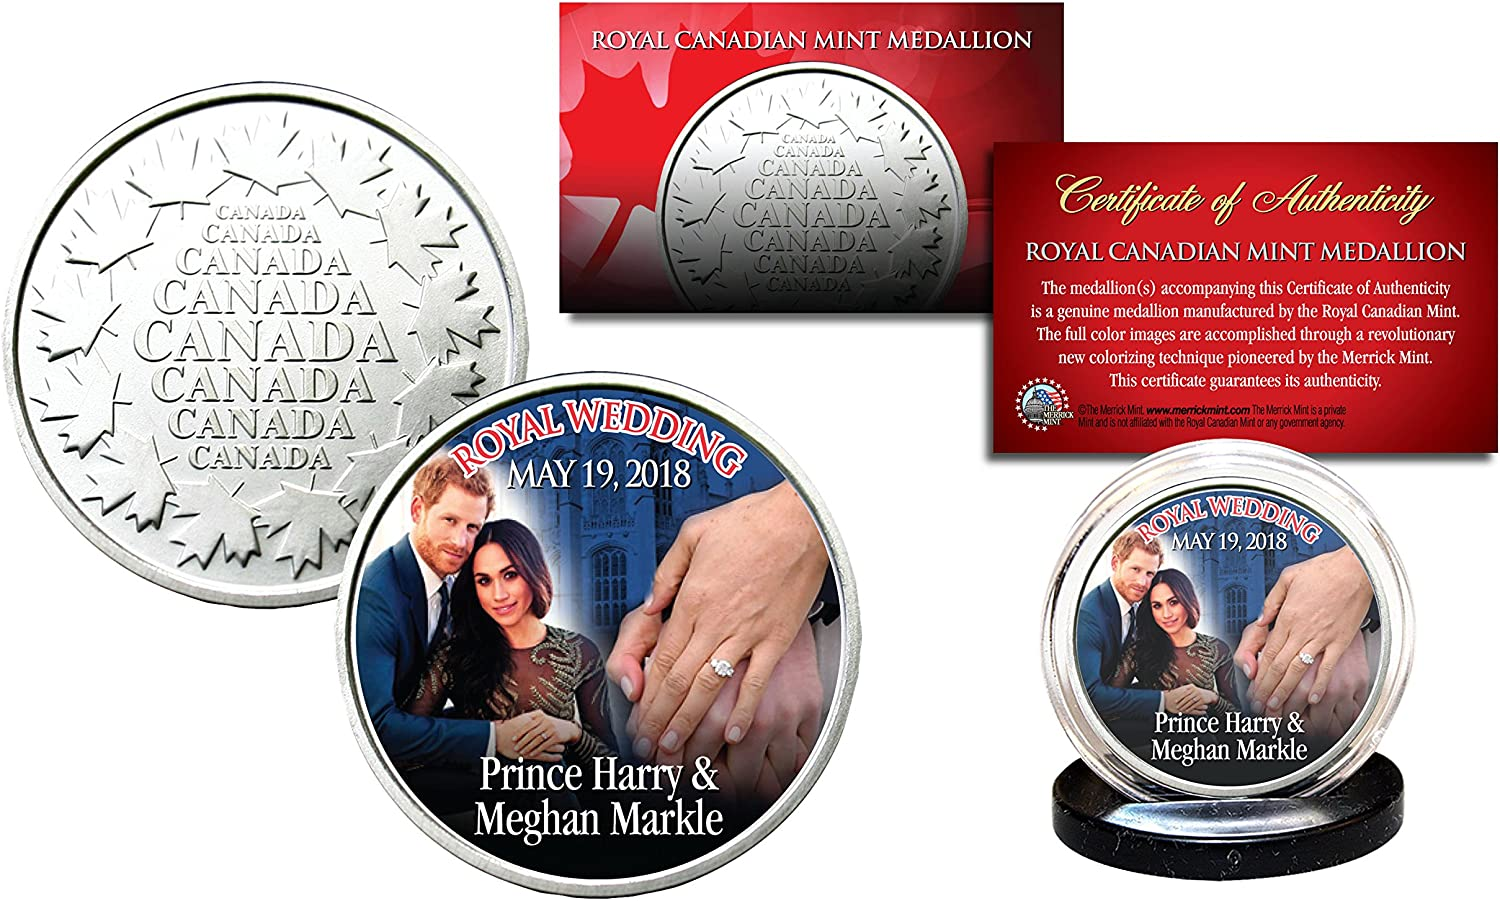 PRINCE HARRY /& MEGHAN MARKLE Royal Wedding May 19th 2018 RCM Medallion Coin